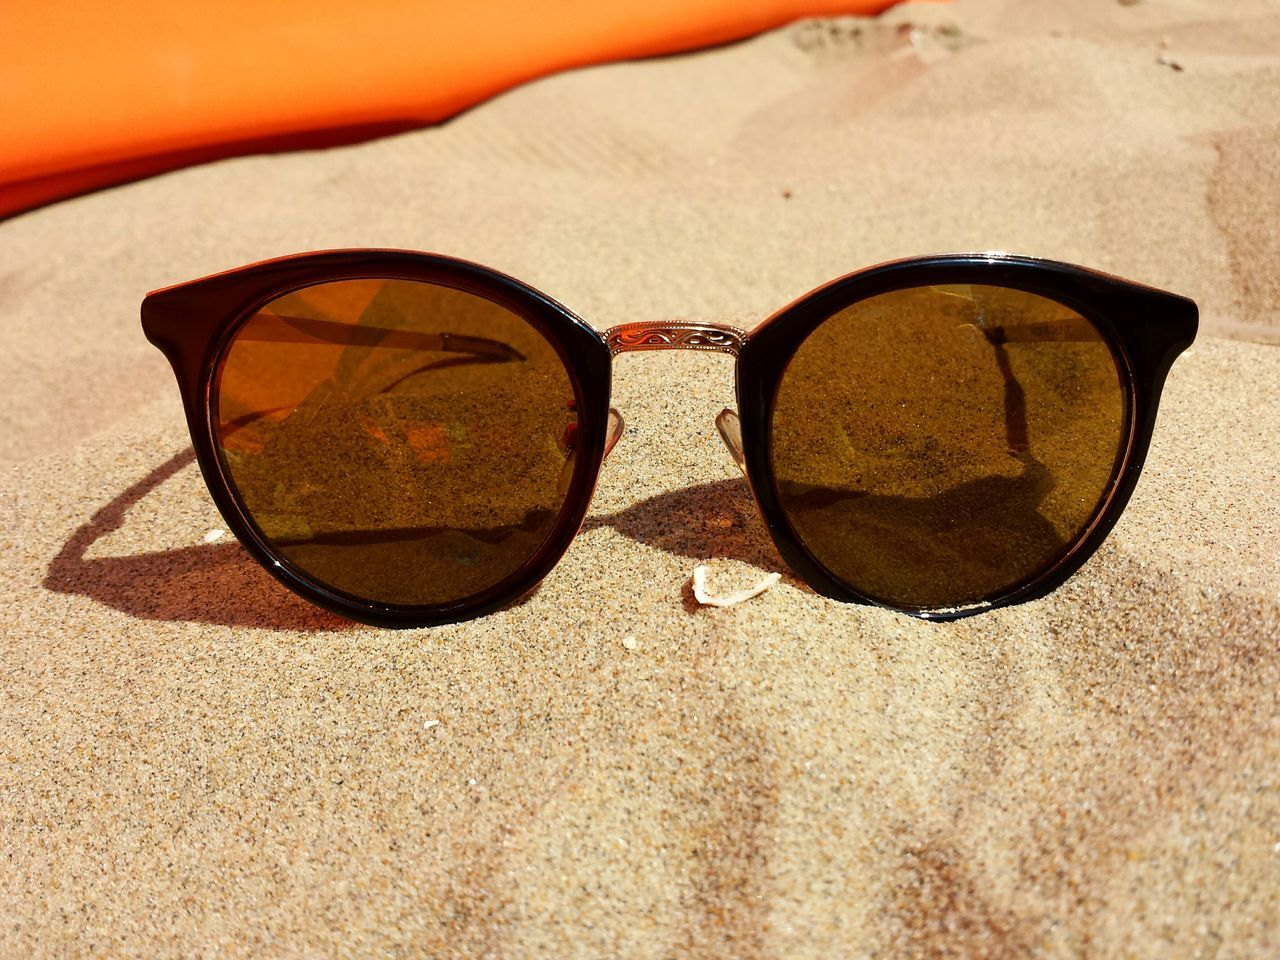 Close-Up Of Sunglasses On Sand